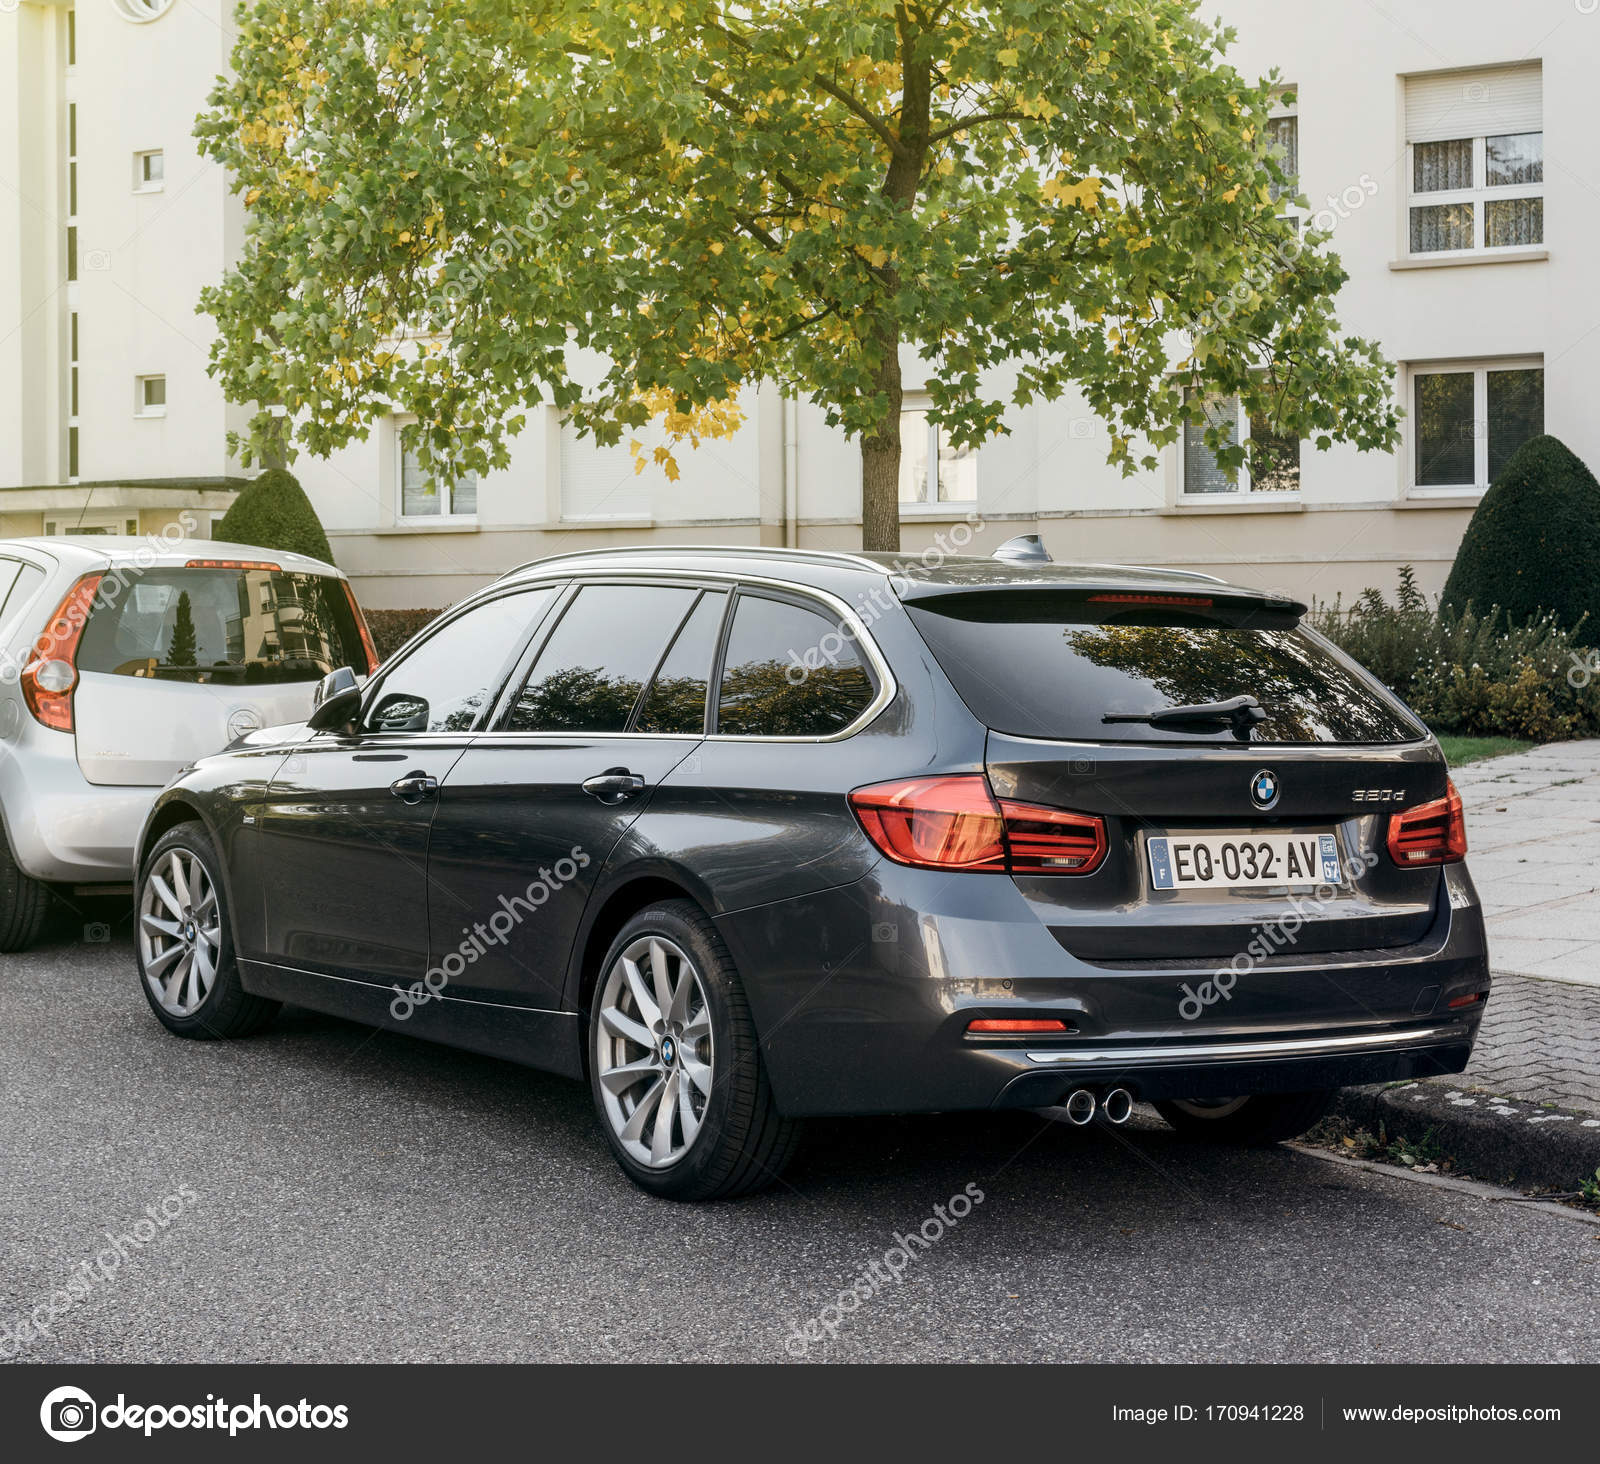 Rear View Of BMW 320d Wagon Luxury Car Parked